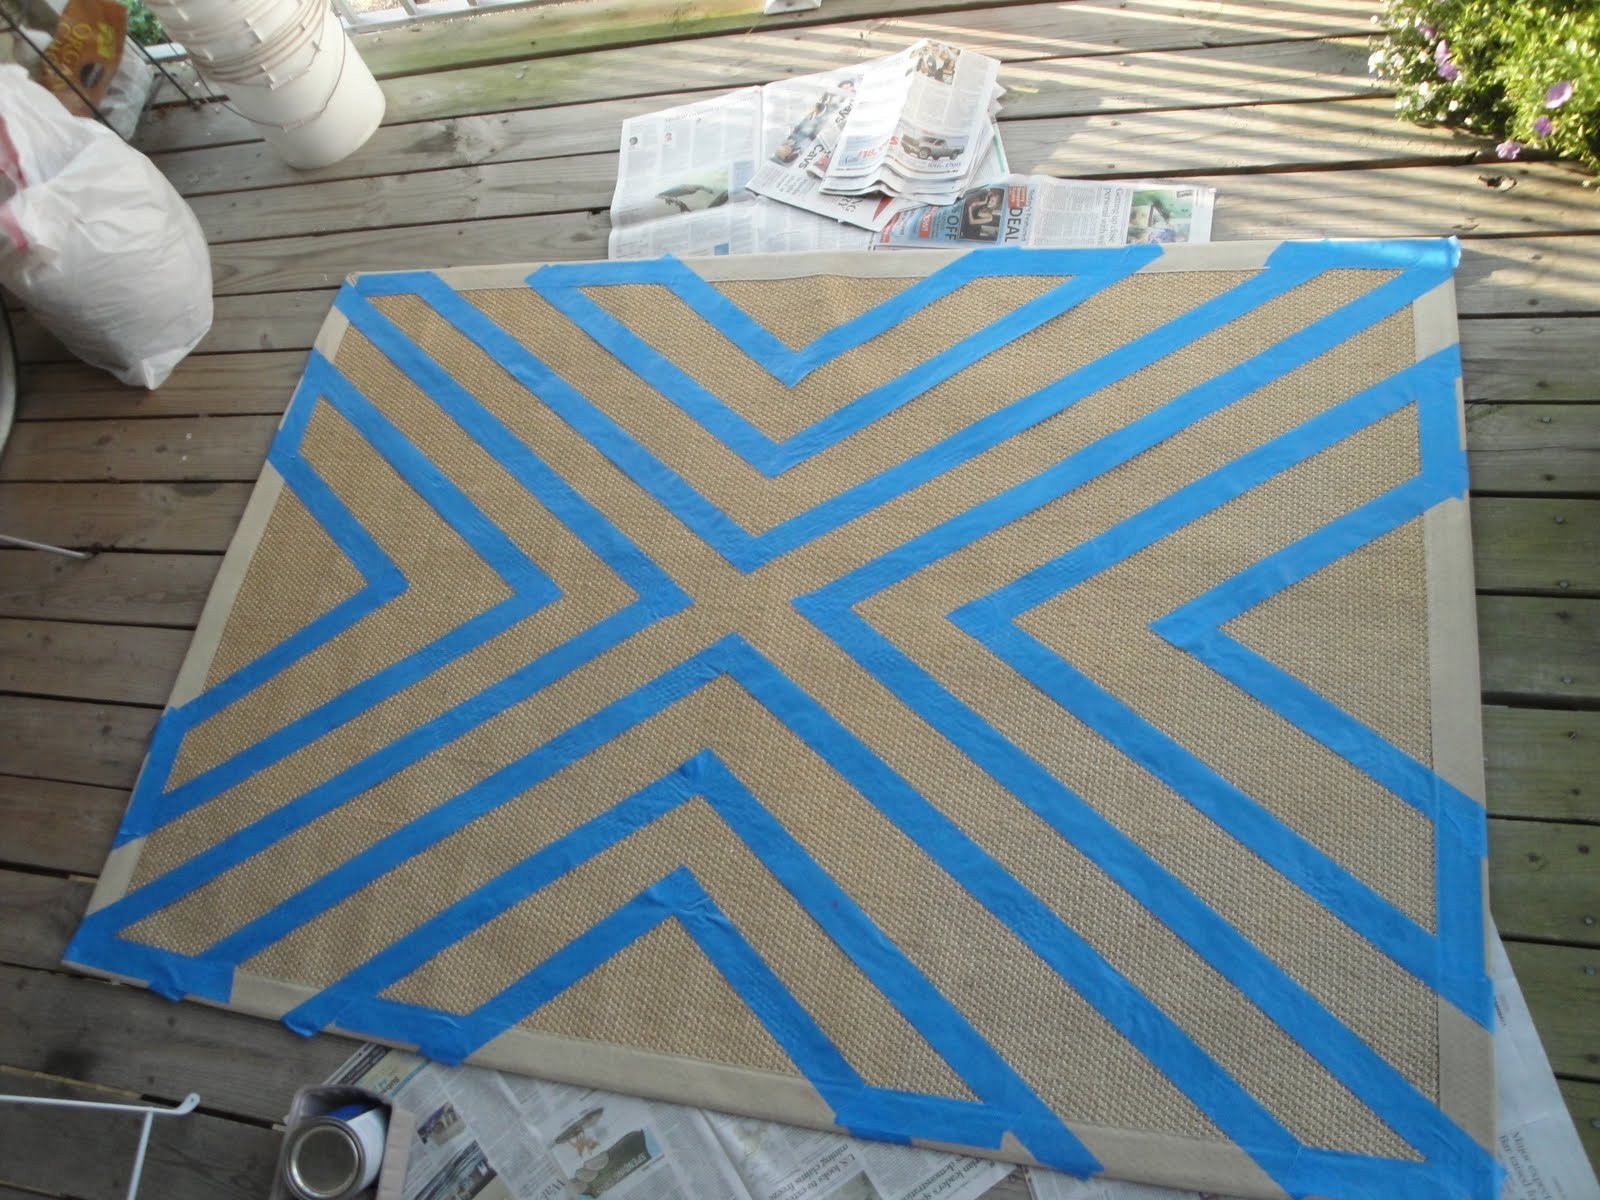 Best ideas about DIY Painted Rug . Save or Pin Newly Domesticated DIY Painted Rug Now.